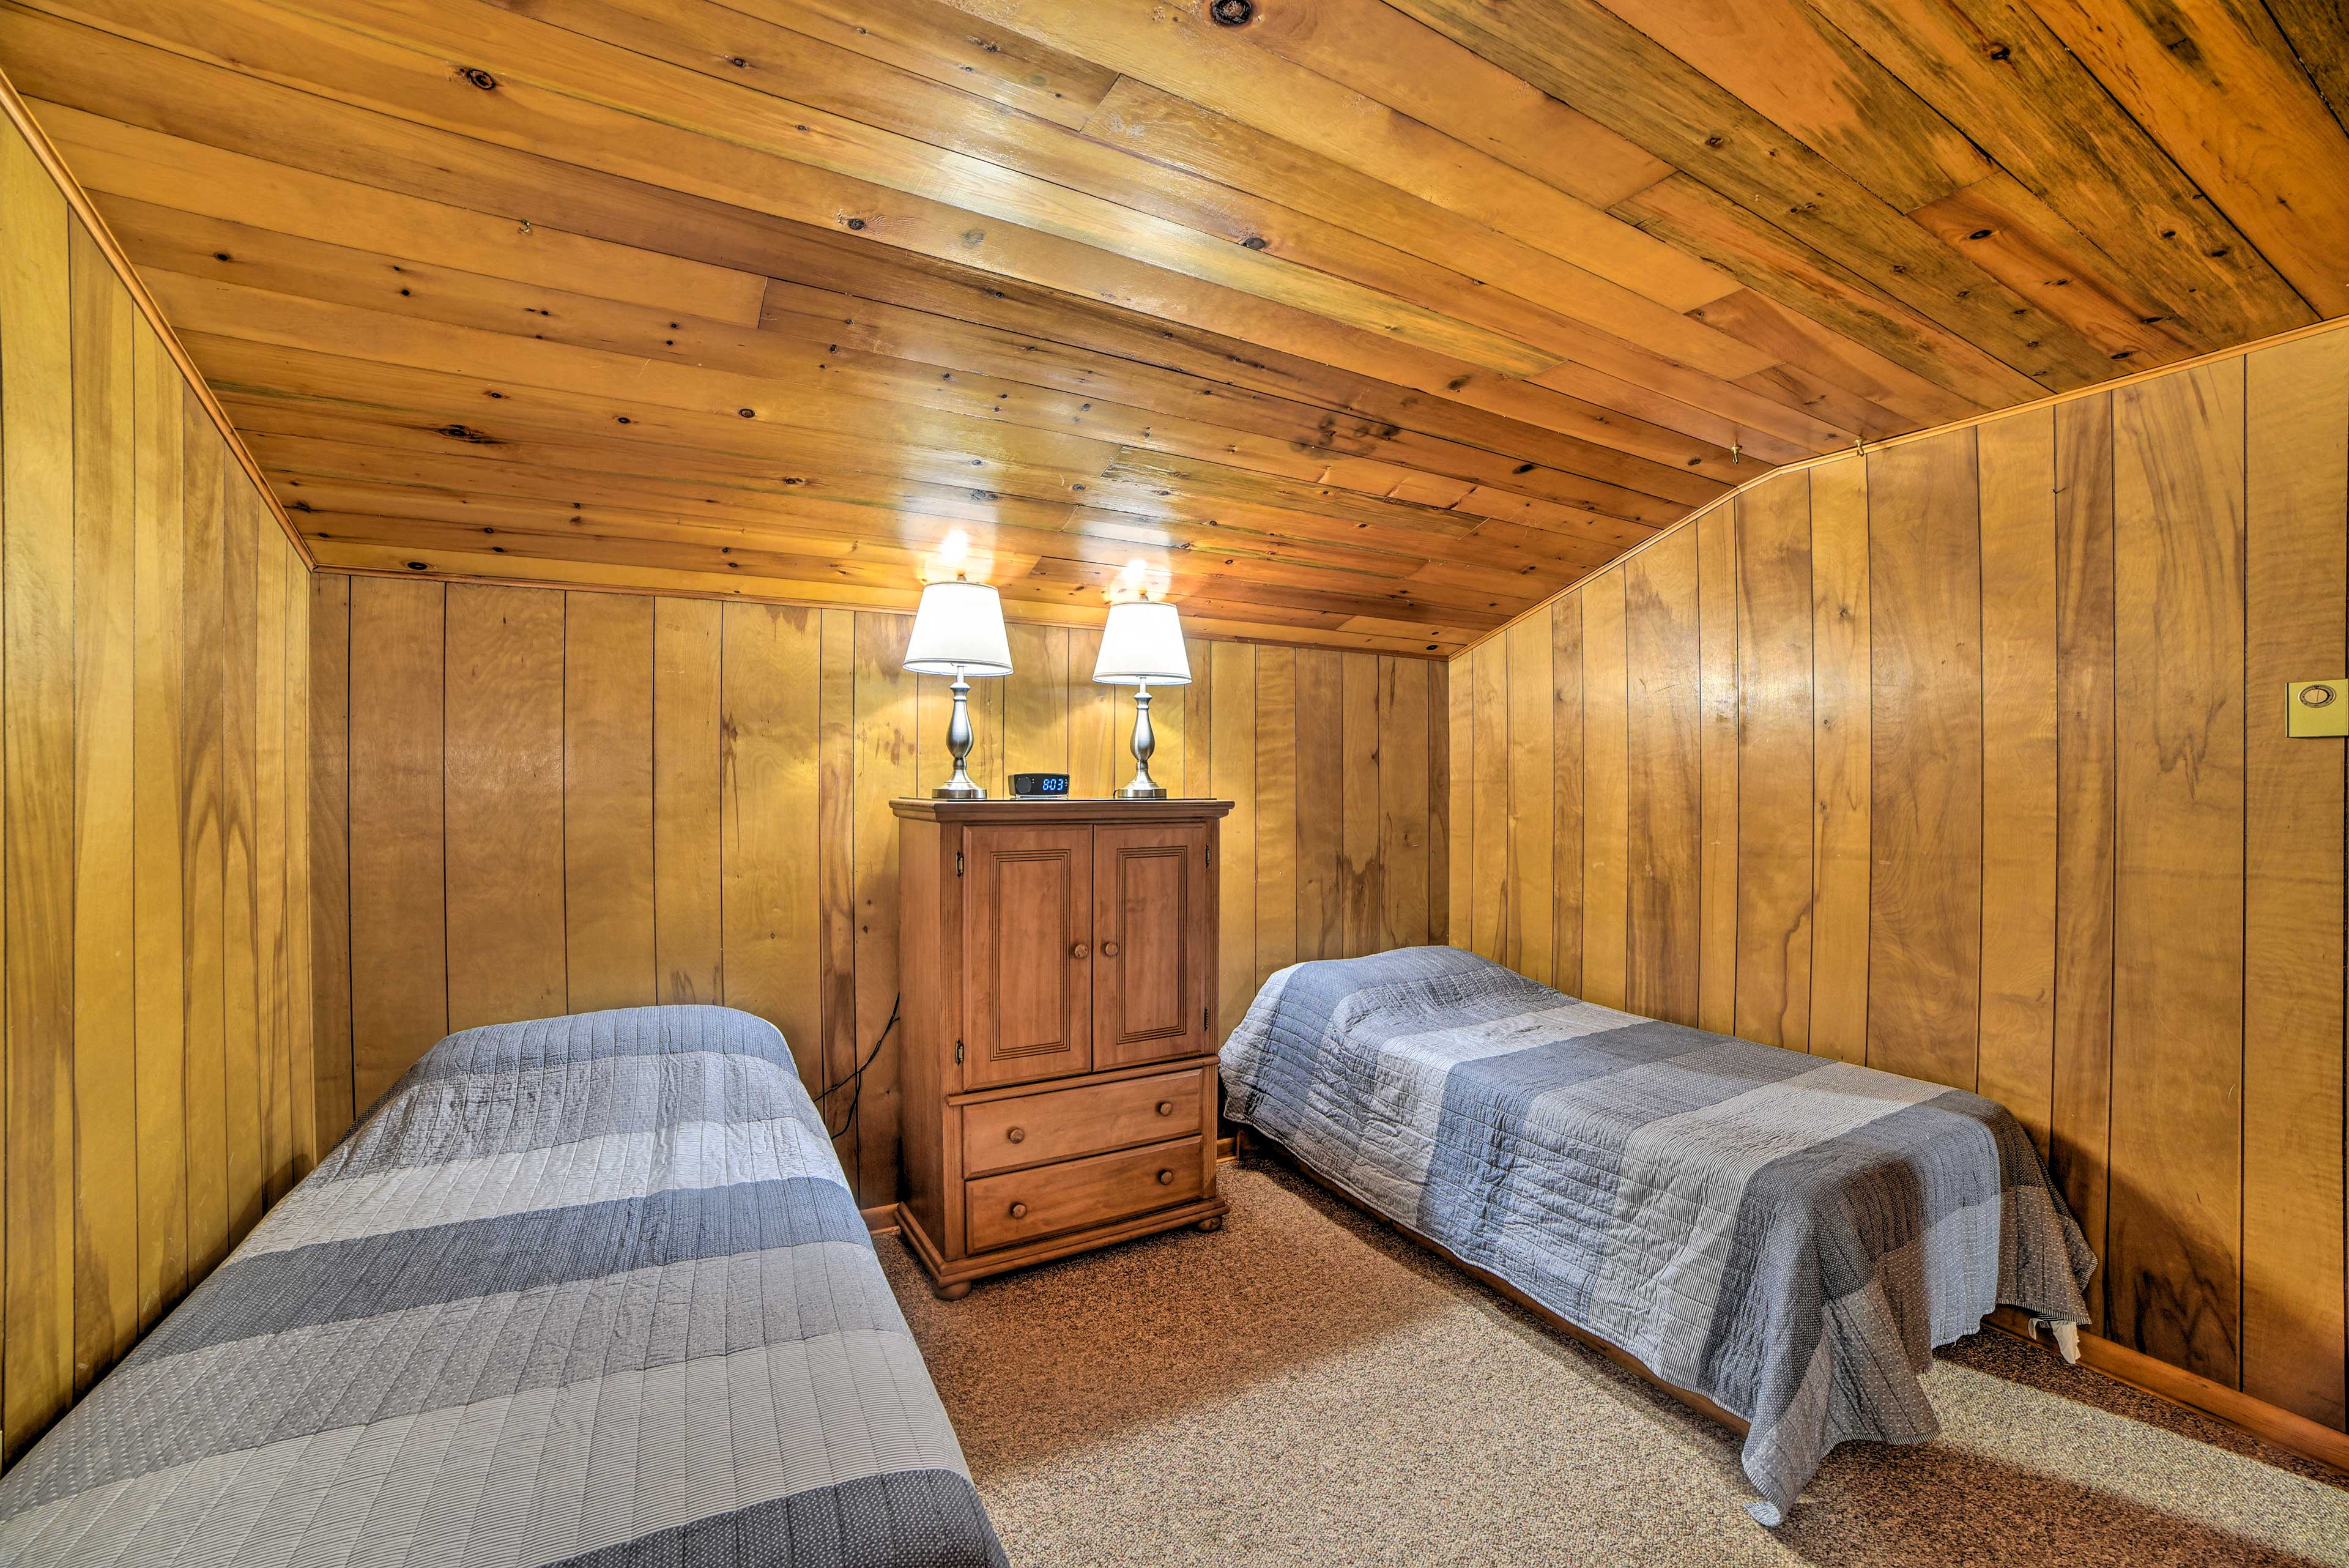 Take your pick of 2 twin-sized beds in bedroom 3.